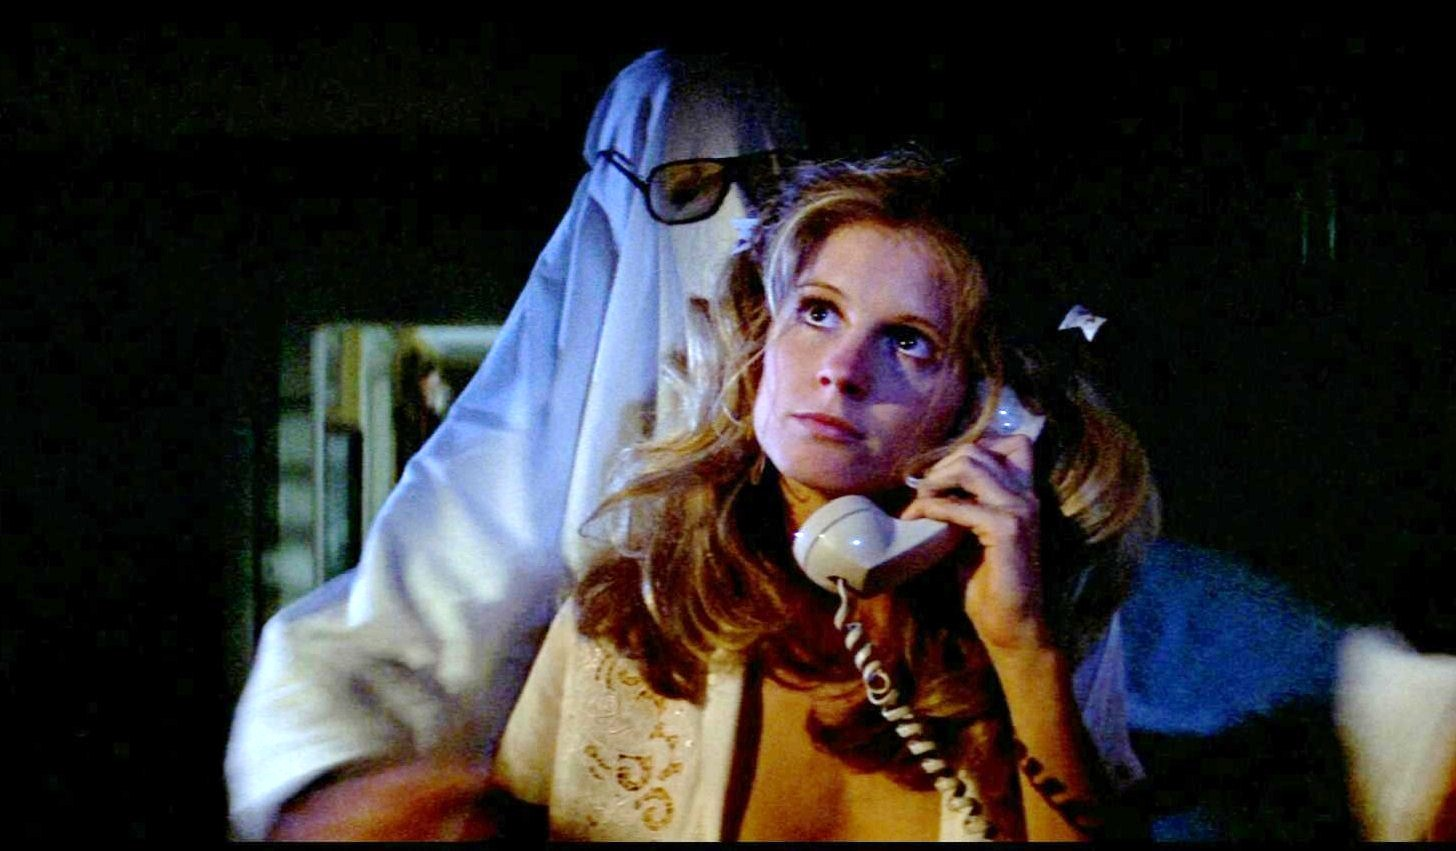 6. Halloween - John Carpenter